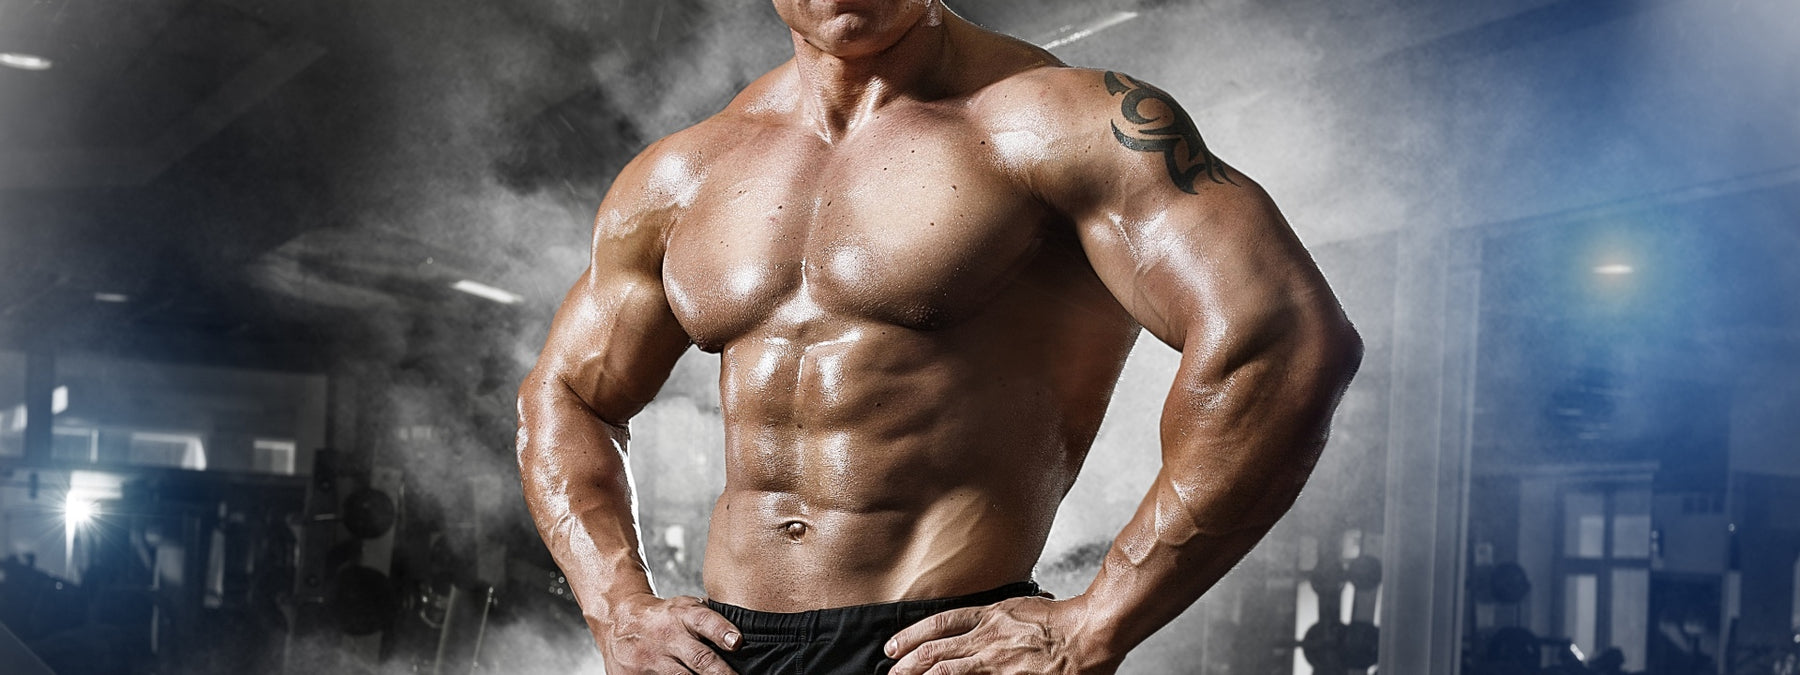 A Tabata Workout to Build Bigger Arms? Yes!